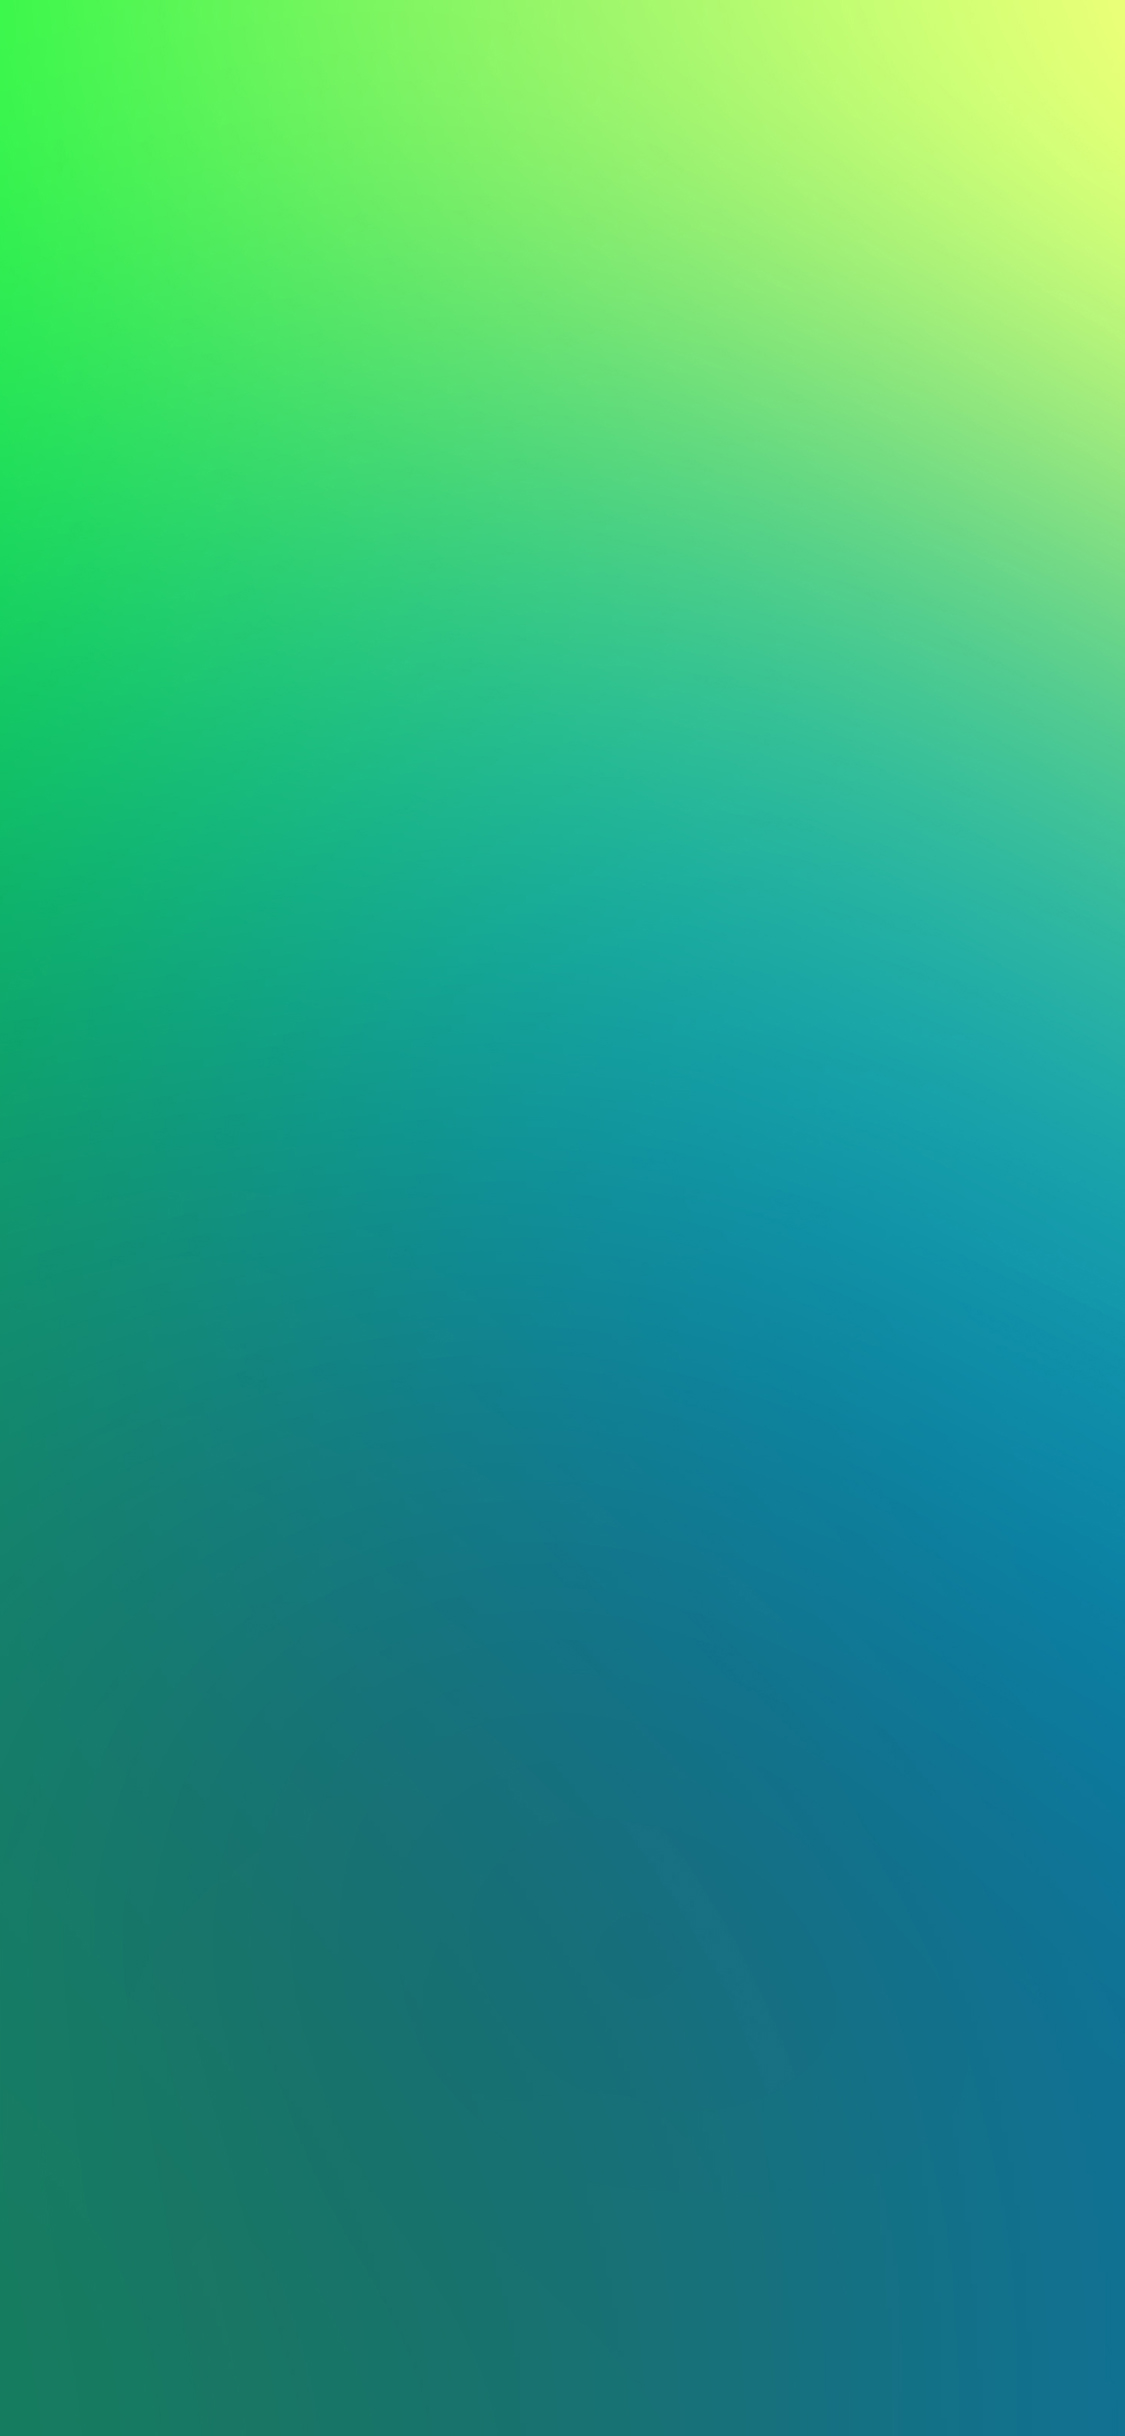 iPhoneXpapers.com-Apple-iPhone-wallpaper-sb45-wallpaper-alien-attack-green-nature-blur